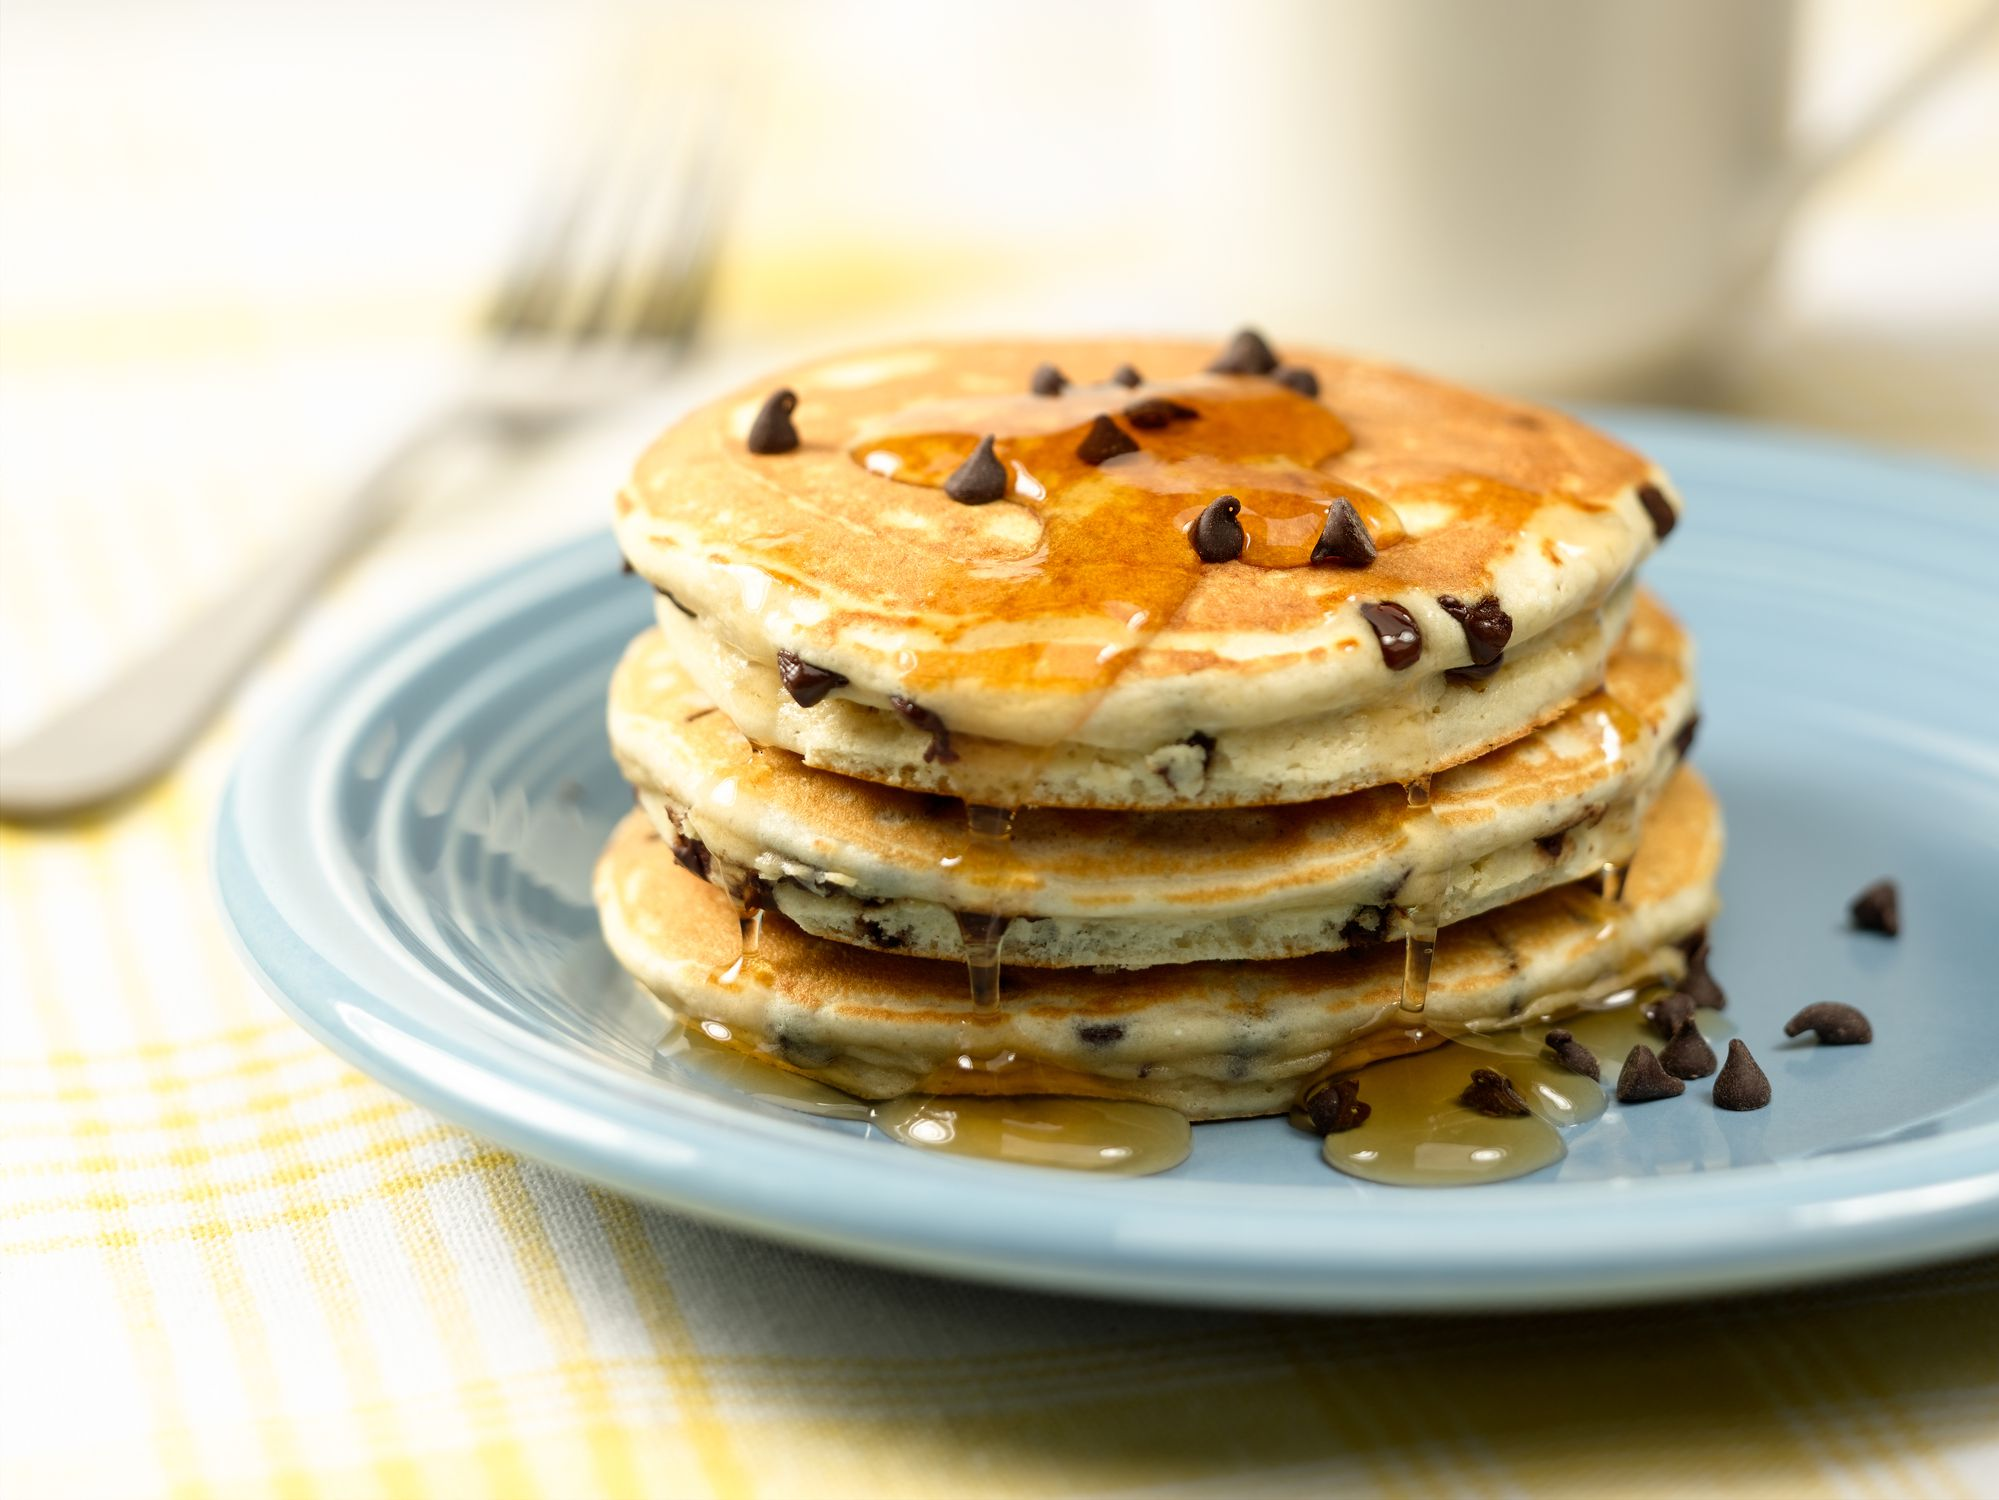 Chocolate chip pancakes recipe how to make dairy free chocolate chip pancakes ccuart Choice Image